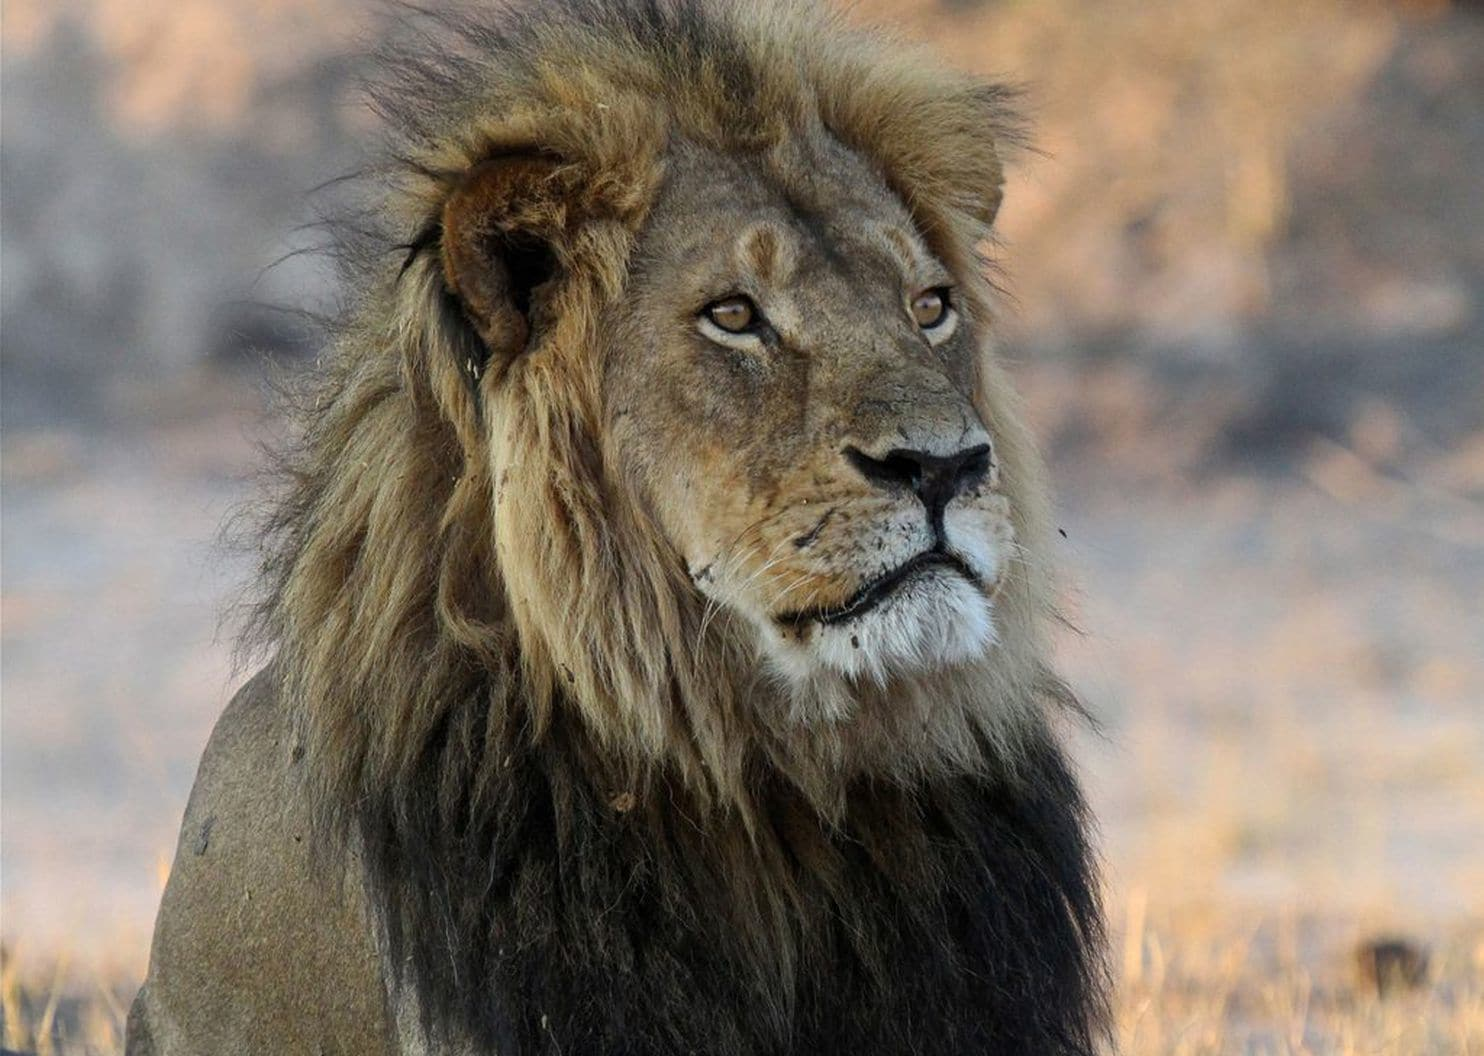 Cecil the lion 'suffered incredible cruelty for at least 10 hours,' new book says